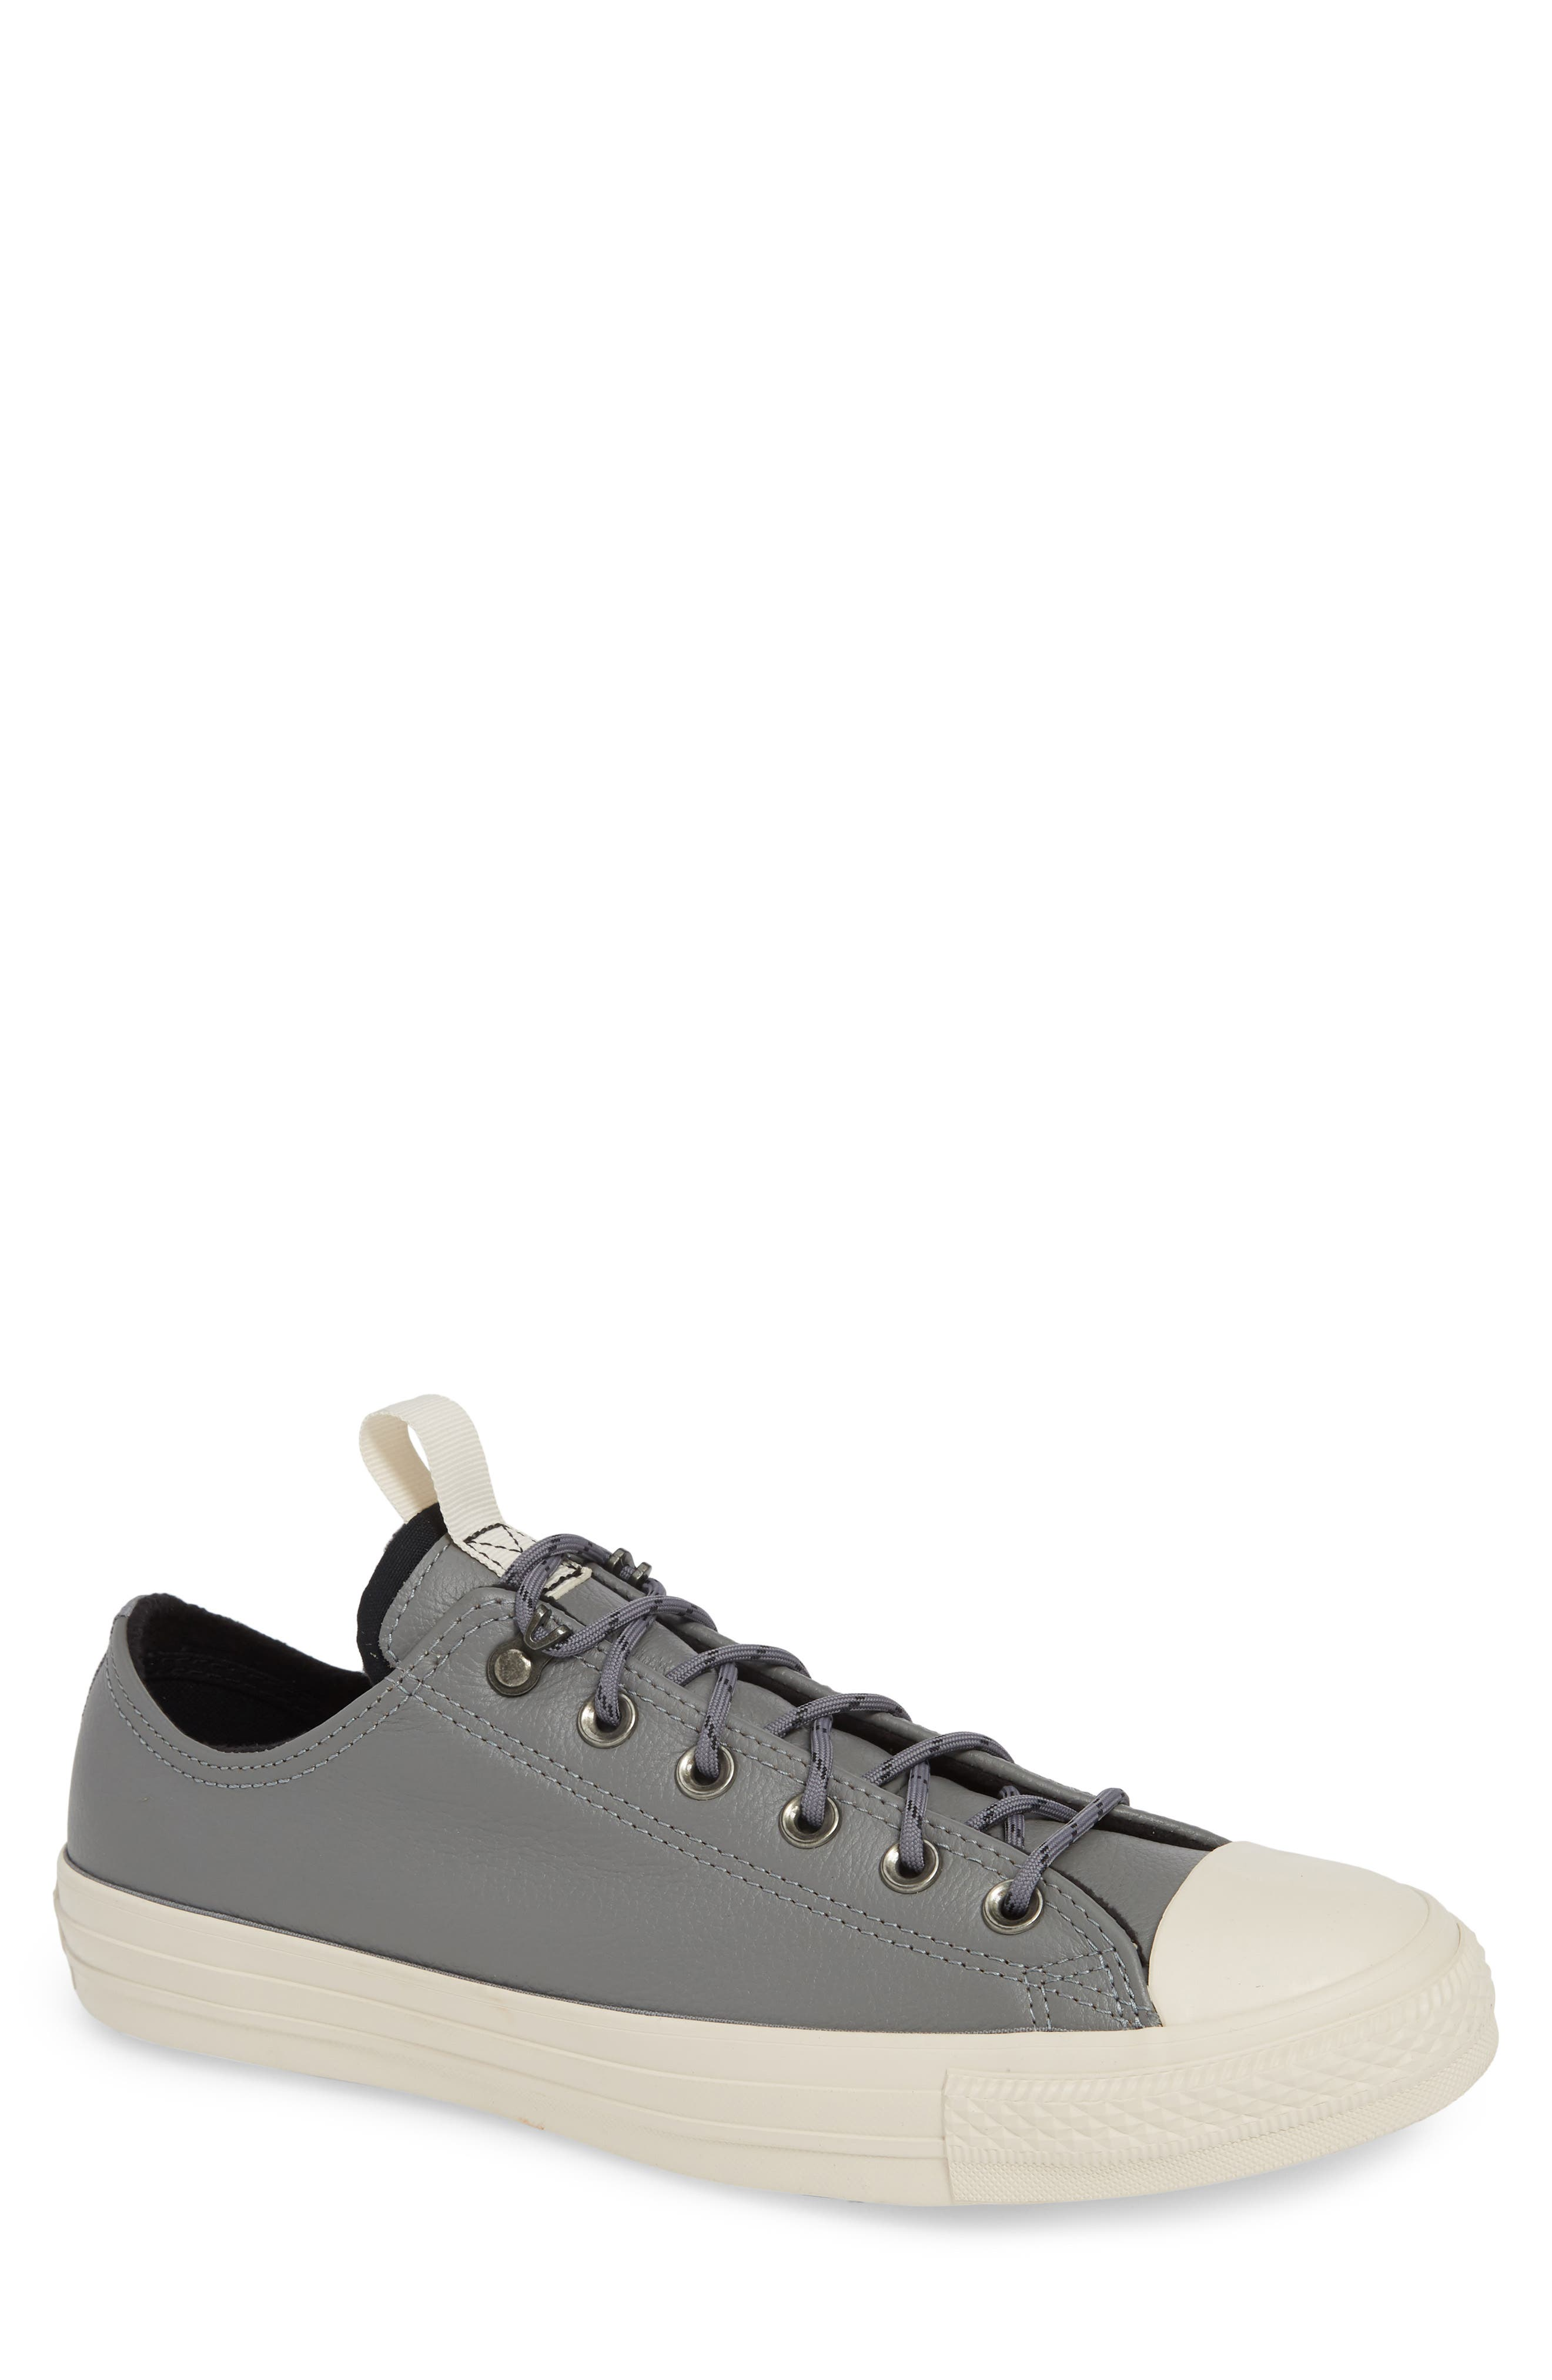 Chuck Taylor<sup>®</sup> All Star<sup>®</sup> Desert Storm Ox Sneaker,                         Main,                         color, WHITE/ LIGHT FAWN/ EGRET